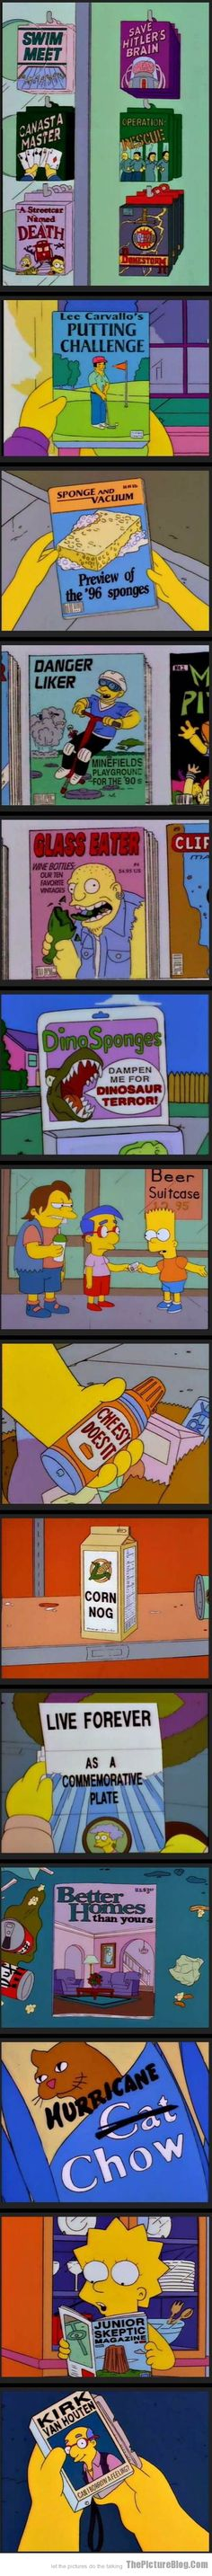 Funny Products found in The Simpsons